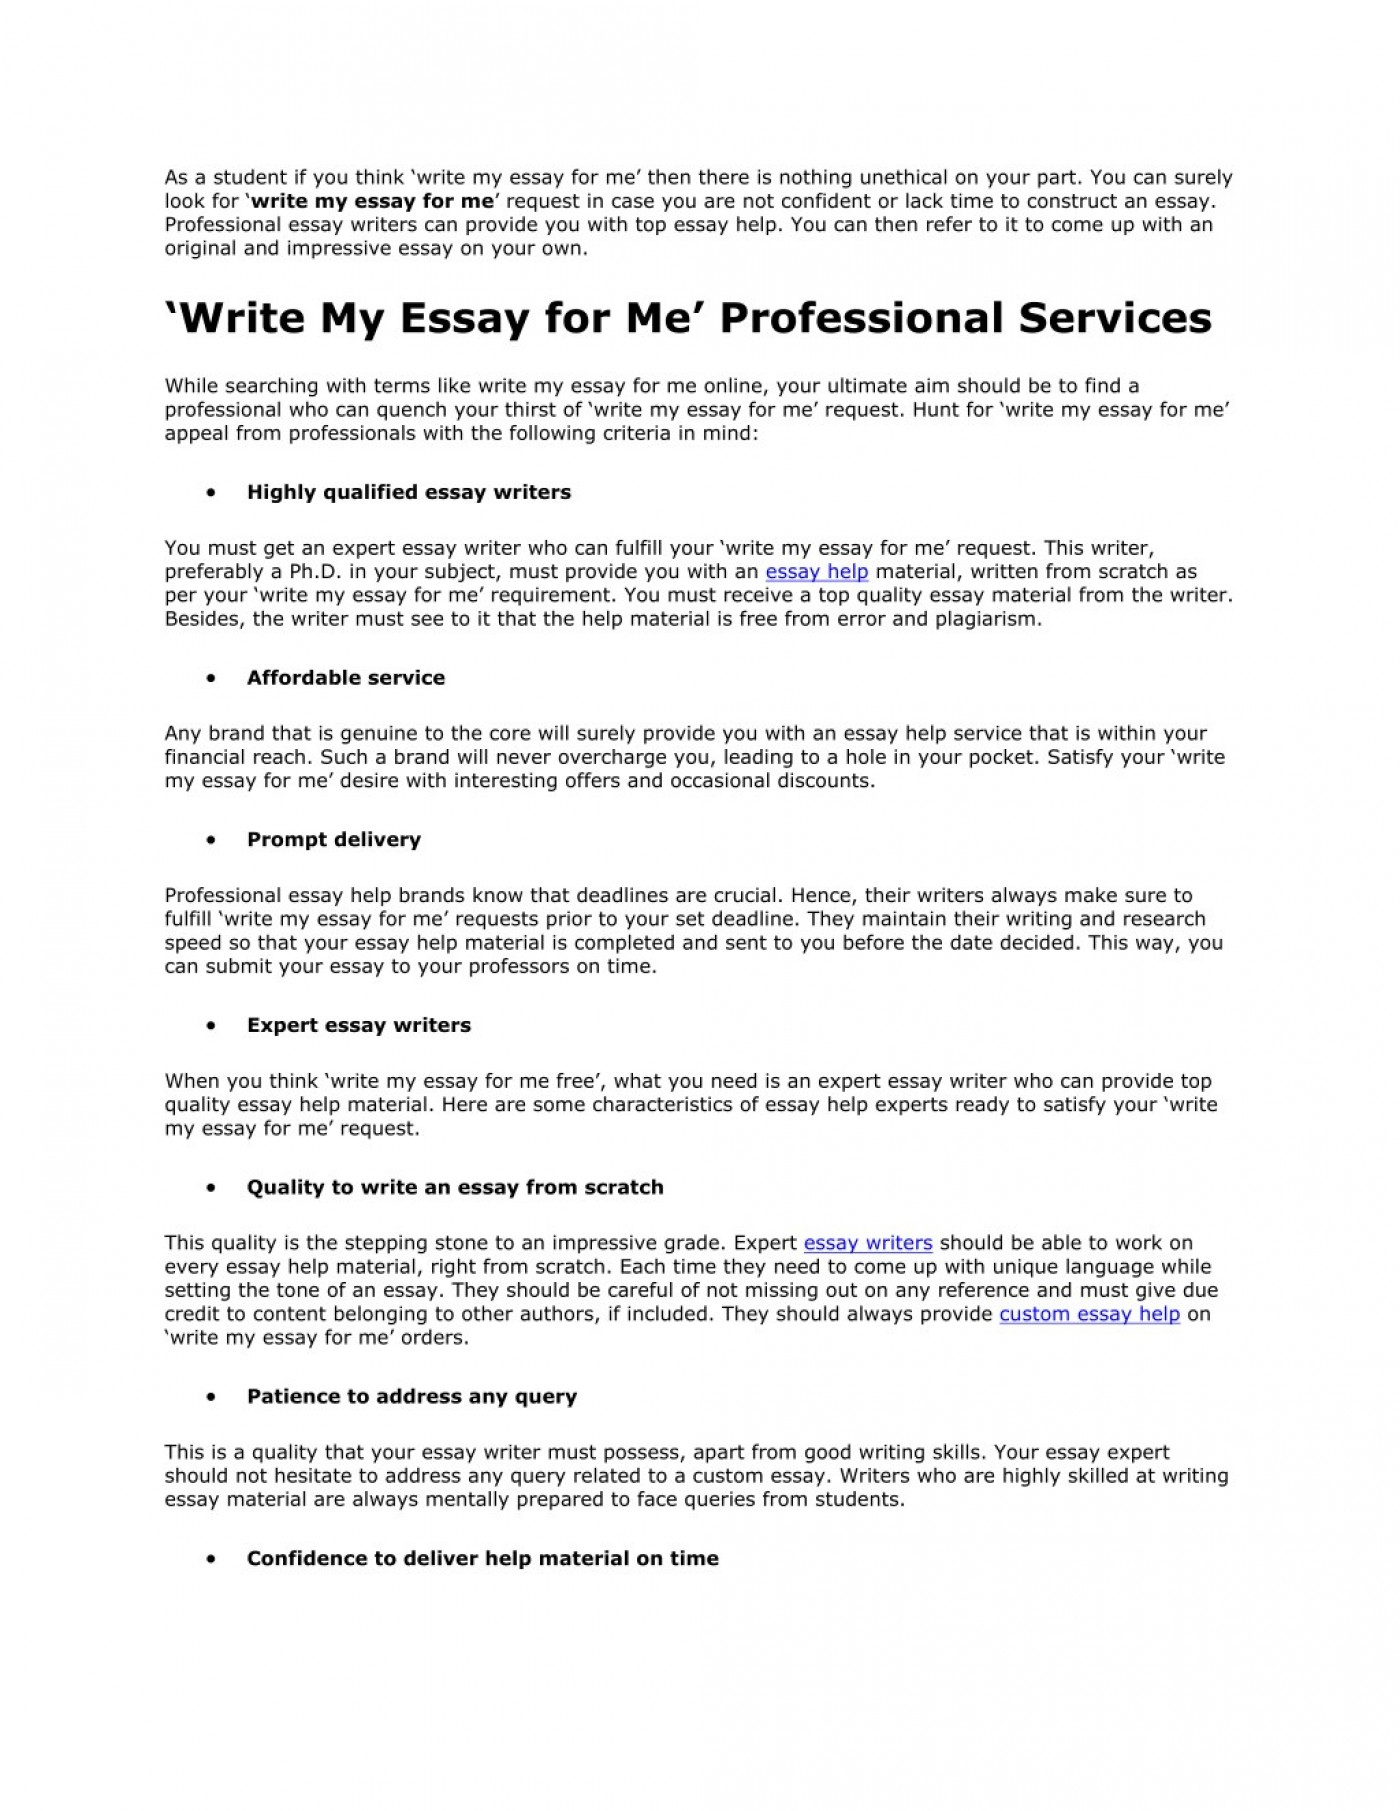 017 Write My Essay For Me Example As Student If You Think Surprising Discount Code Please 4 Me.org 1400